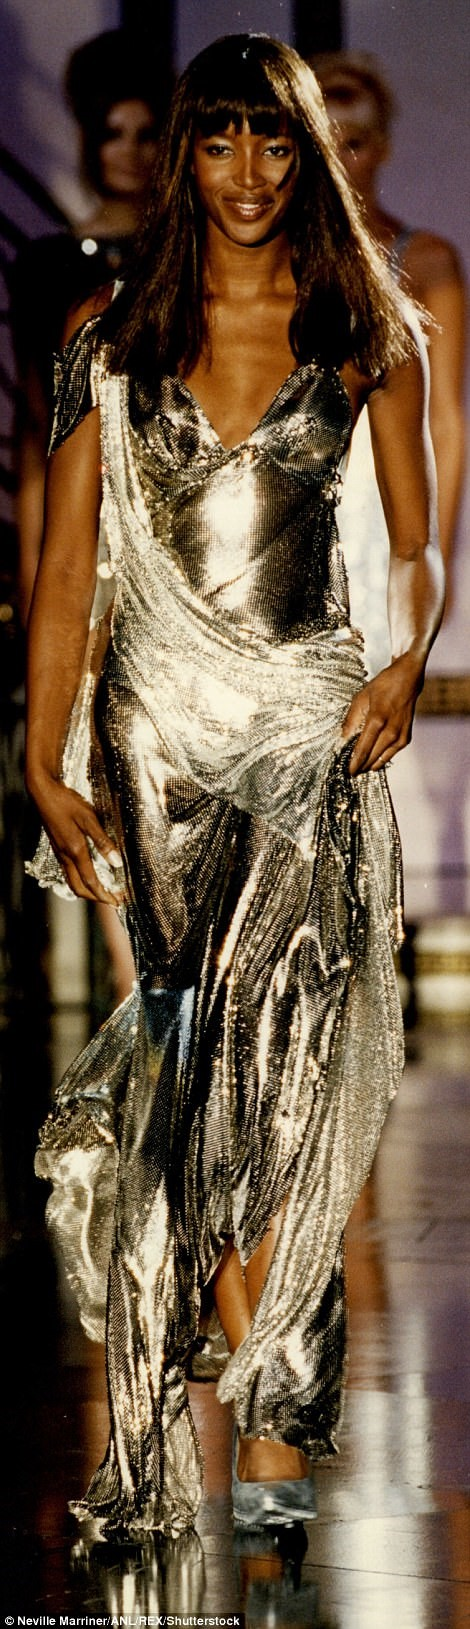 NAOMI CAMPBELL YOUNG ON THE CATWALK